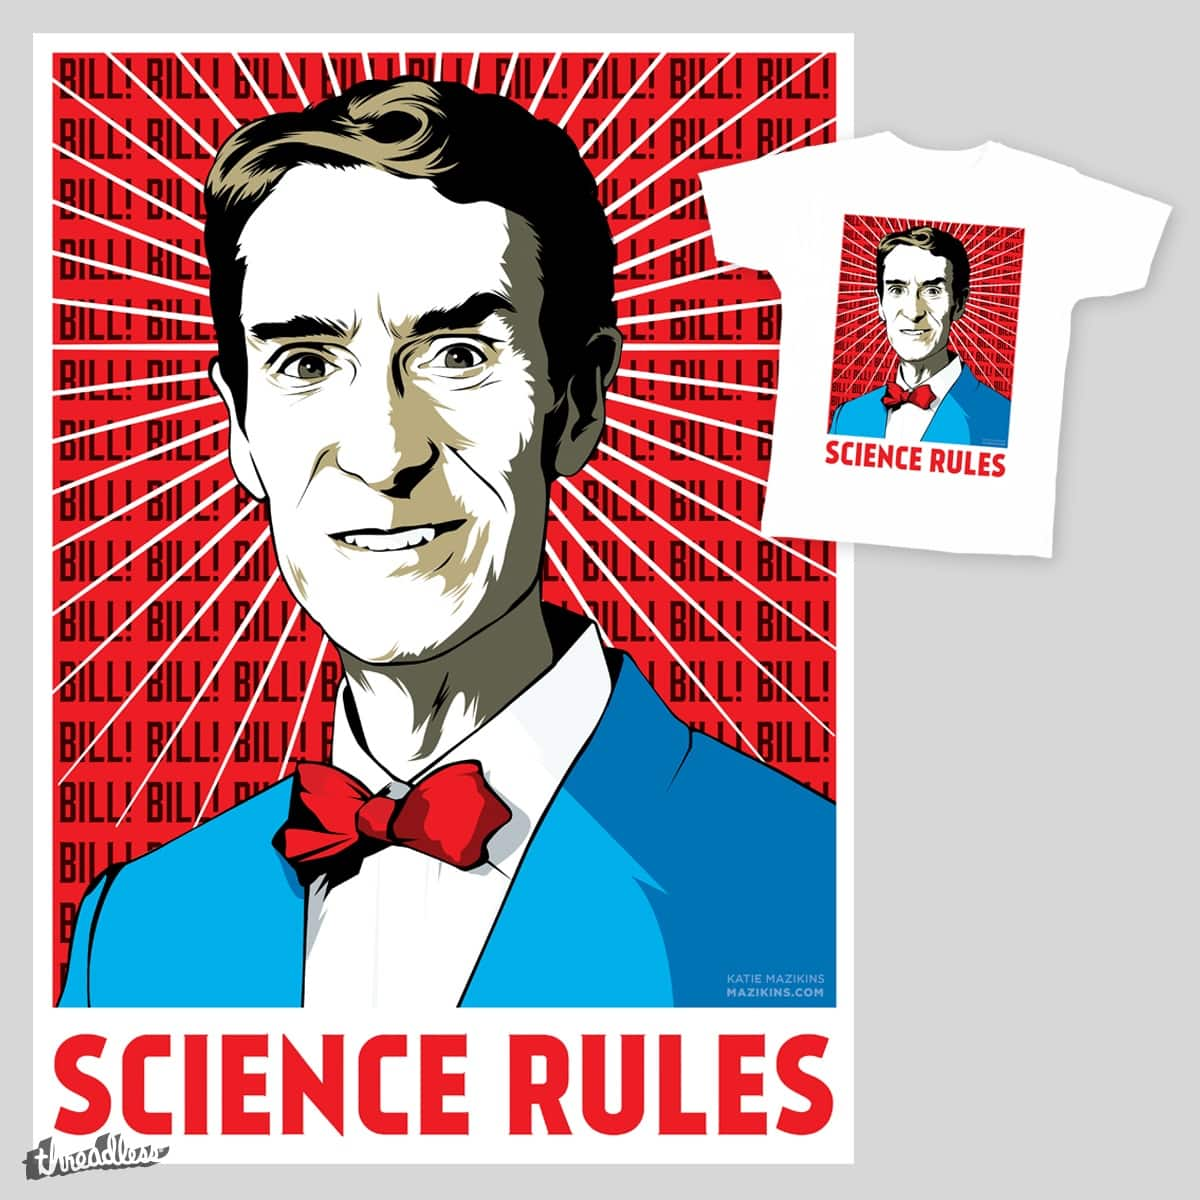 Science Rules by Katie Mazikins on Threadless